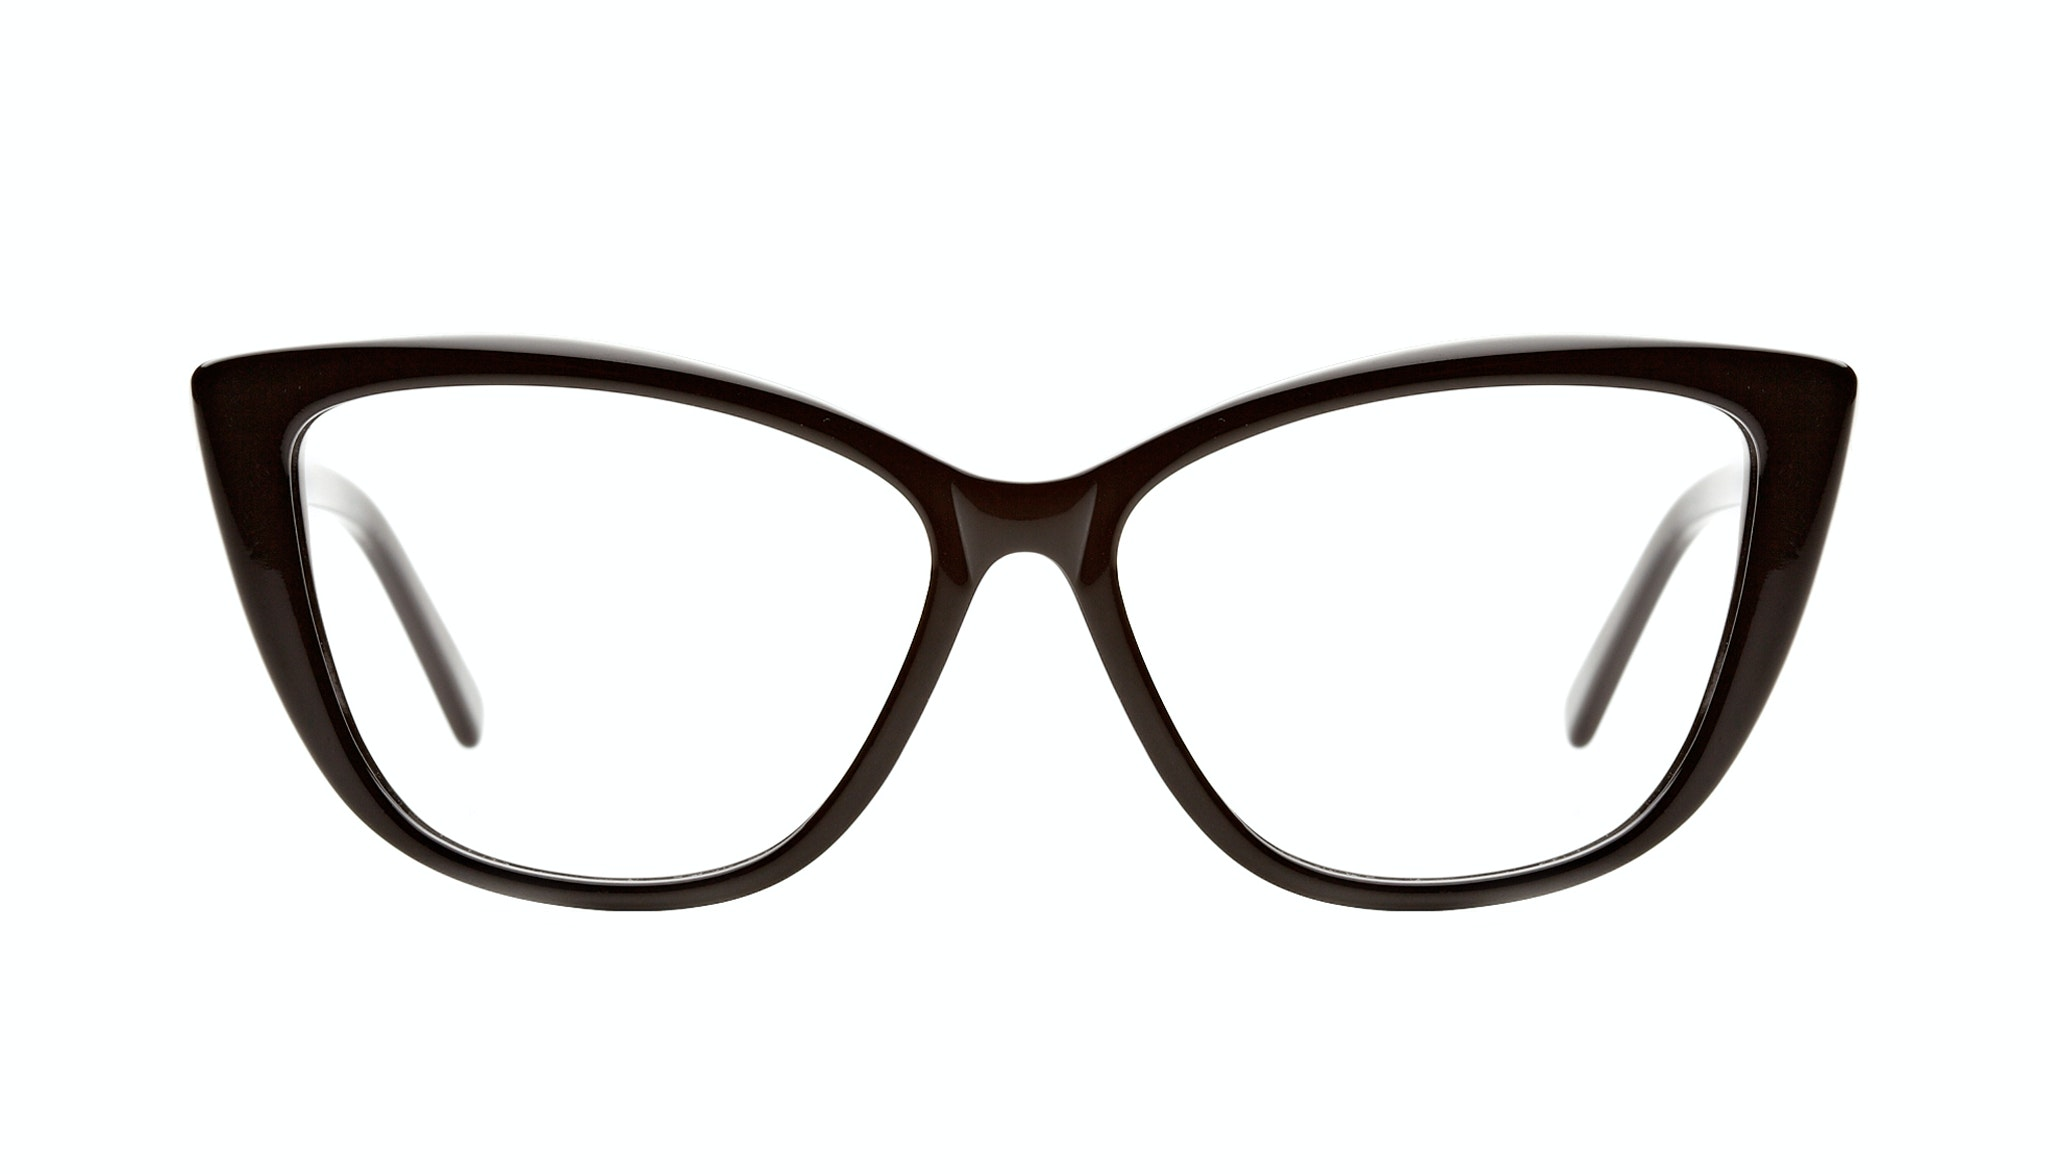 Affordable Fashion Glasses Cat Eye Daring Cateye Eyeglasses Women Dolled Up Black Front